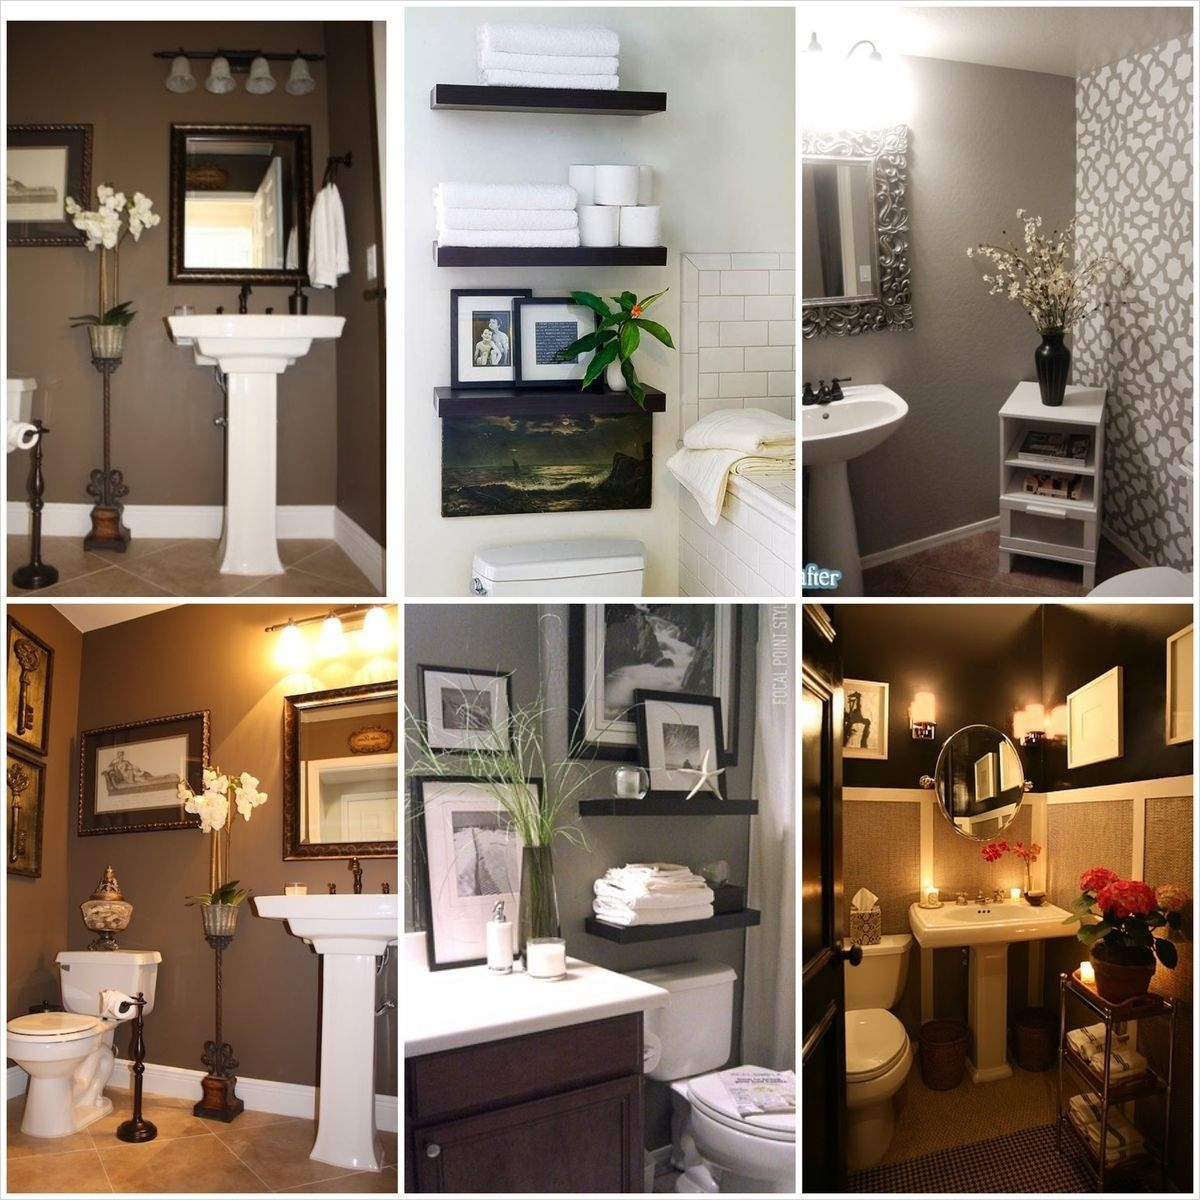 Bathroom Shelves Decorating Ideas 62 Small Half Bathroom Decorating Ideas to Pin Pinterest Small Half Bathroom Cardkeeper 8